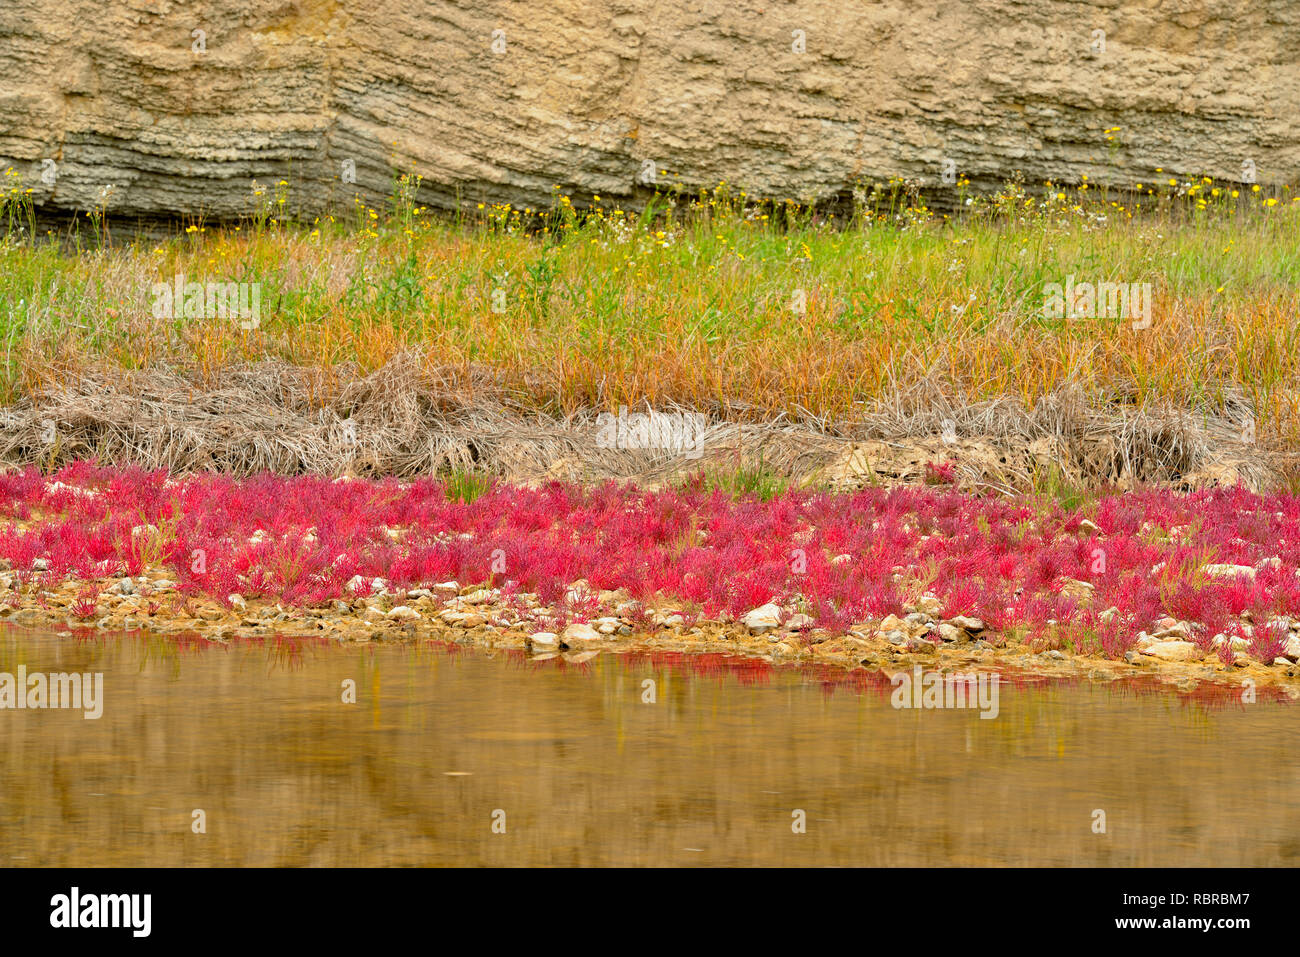 Salt River with salt-tolerant red samphire, Wood Buffalo National Park, Albert, Canada Stock Photo